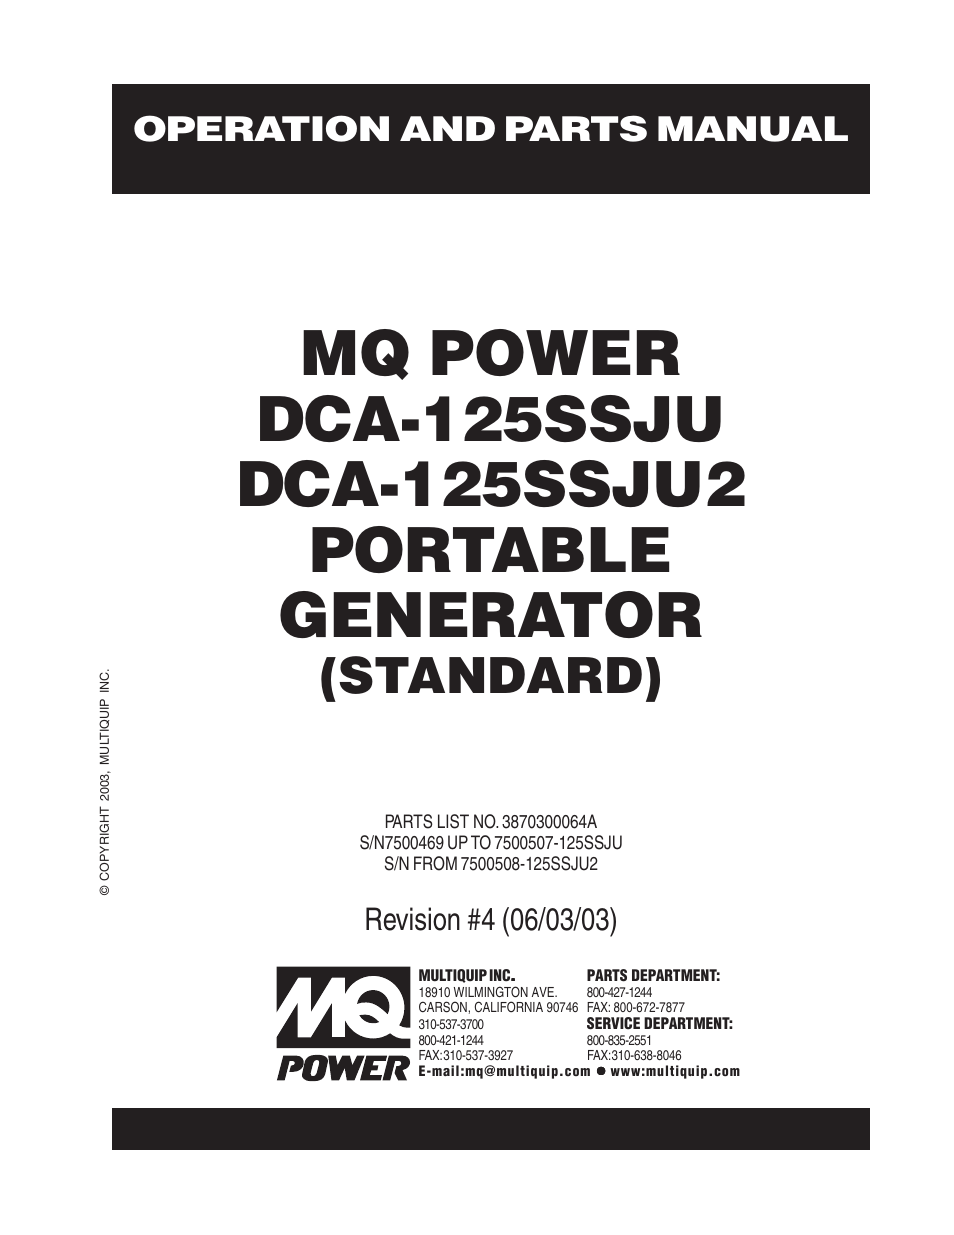 multiquip mq power portable generator standard dca 125ssju page1 mq power parts dca 25ssiu2 mq power generator dca 25ssiu2 mq power  at readyjetset.co